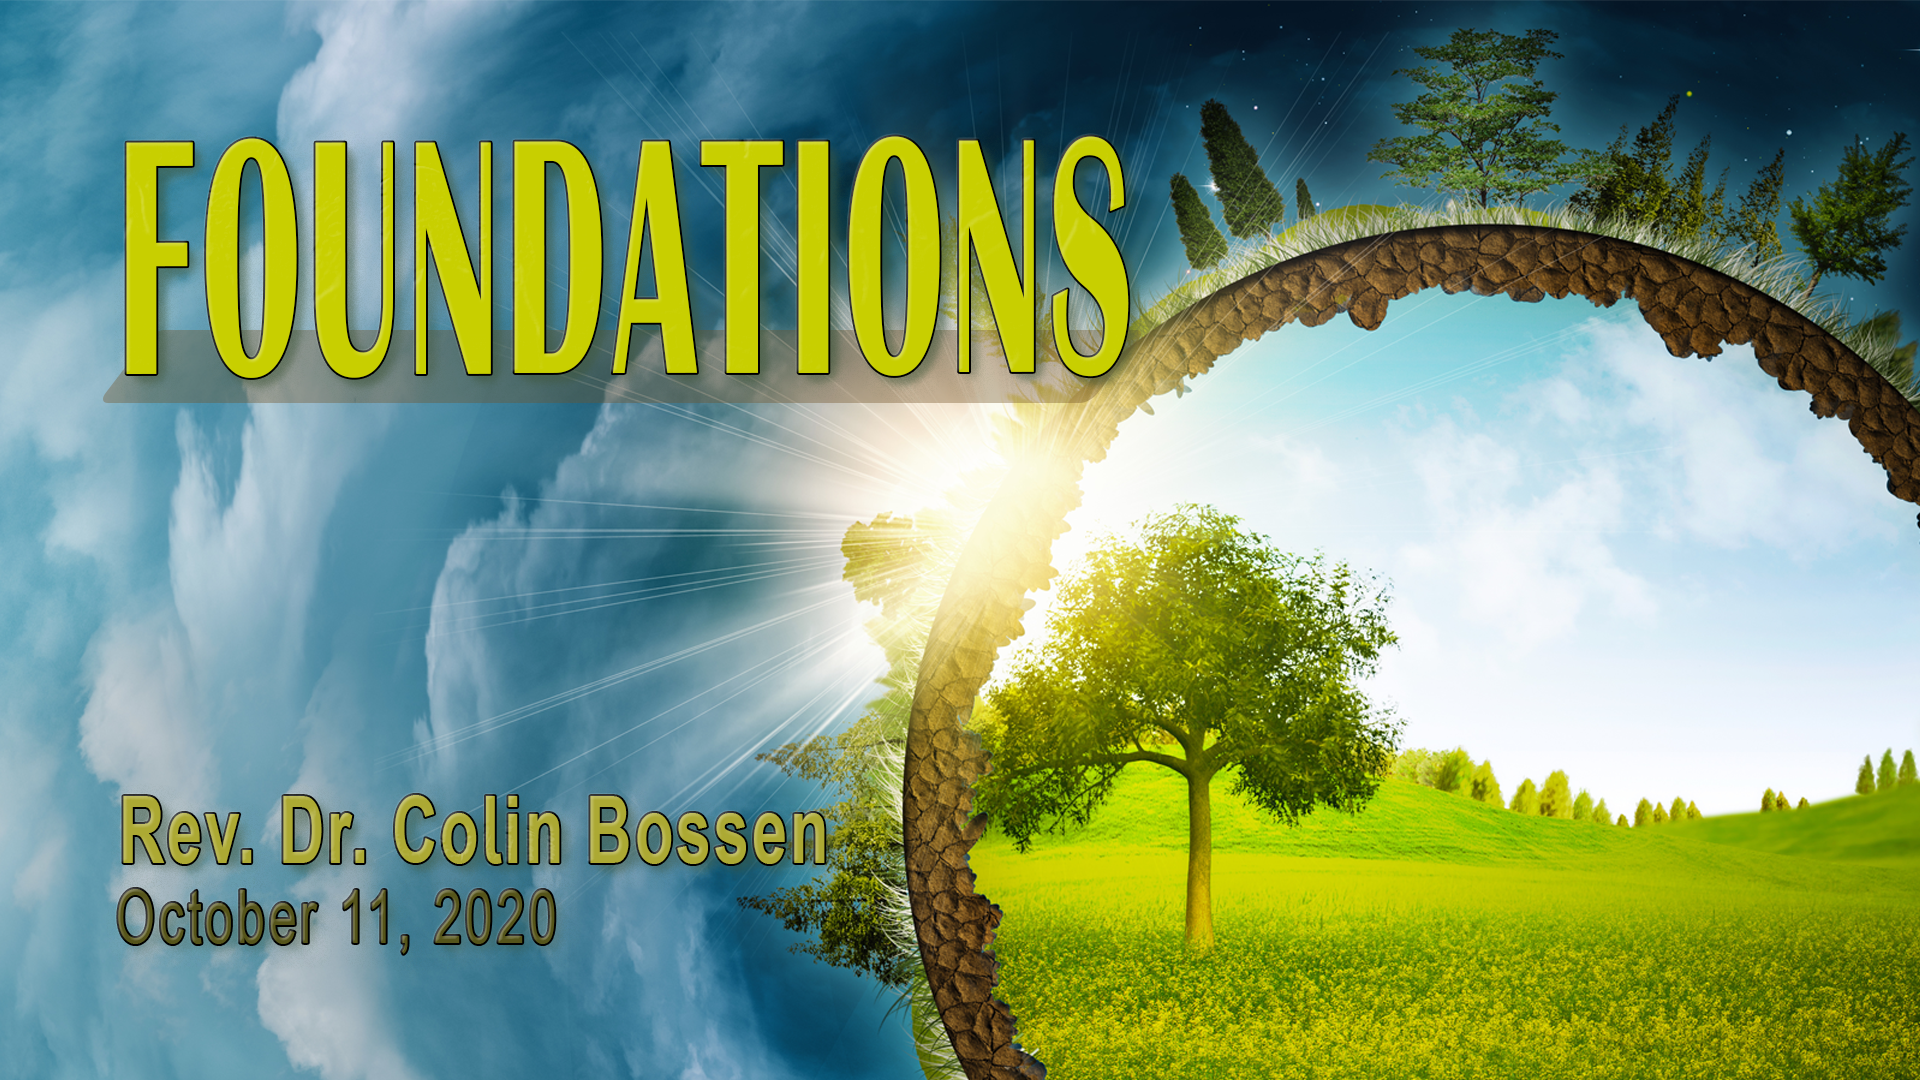 Foundations - First Unitarian Universalist Church of Houston - Oct 11-2020